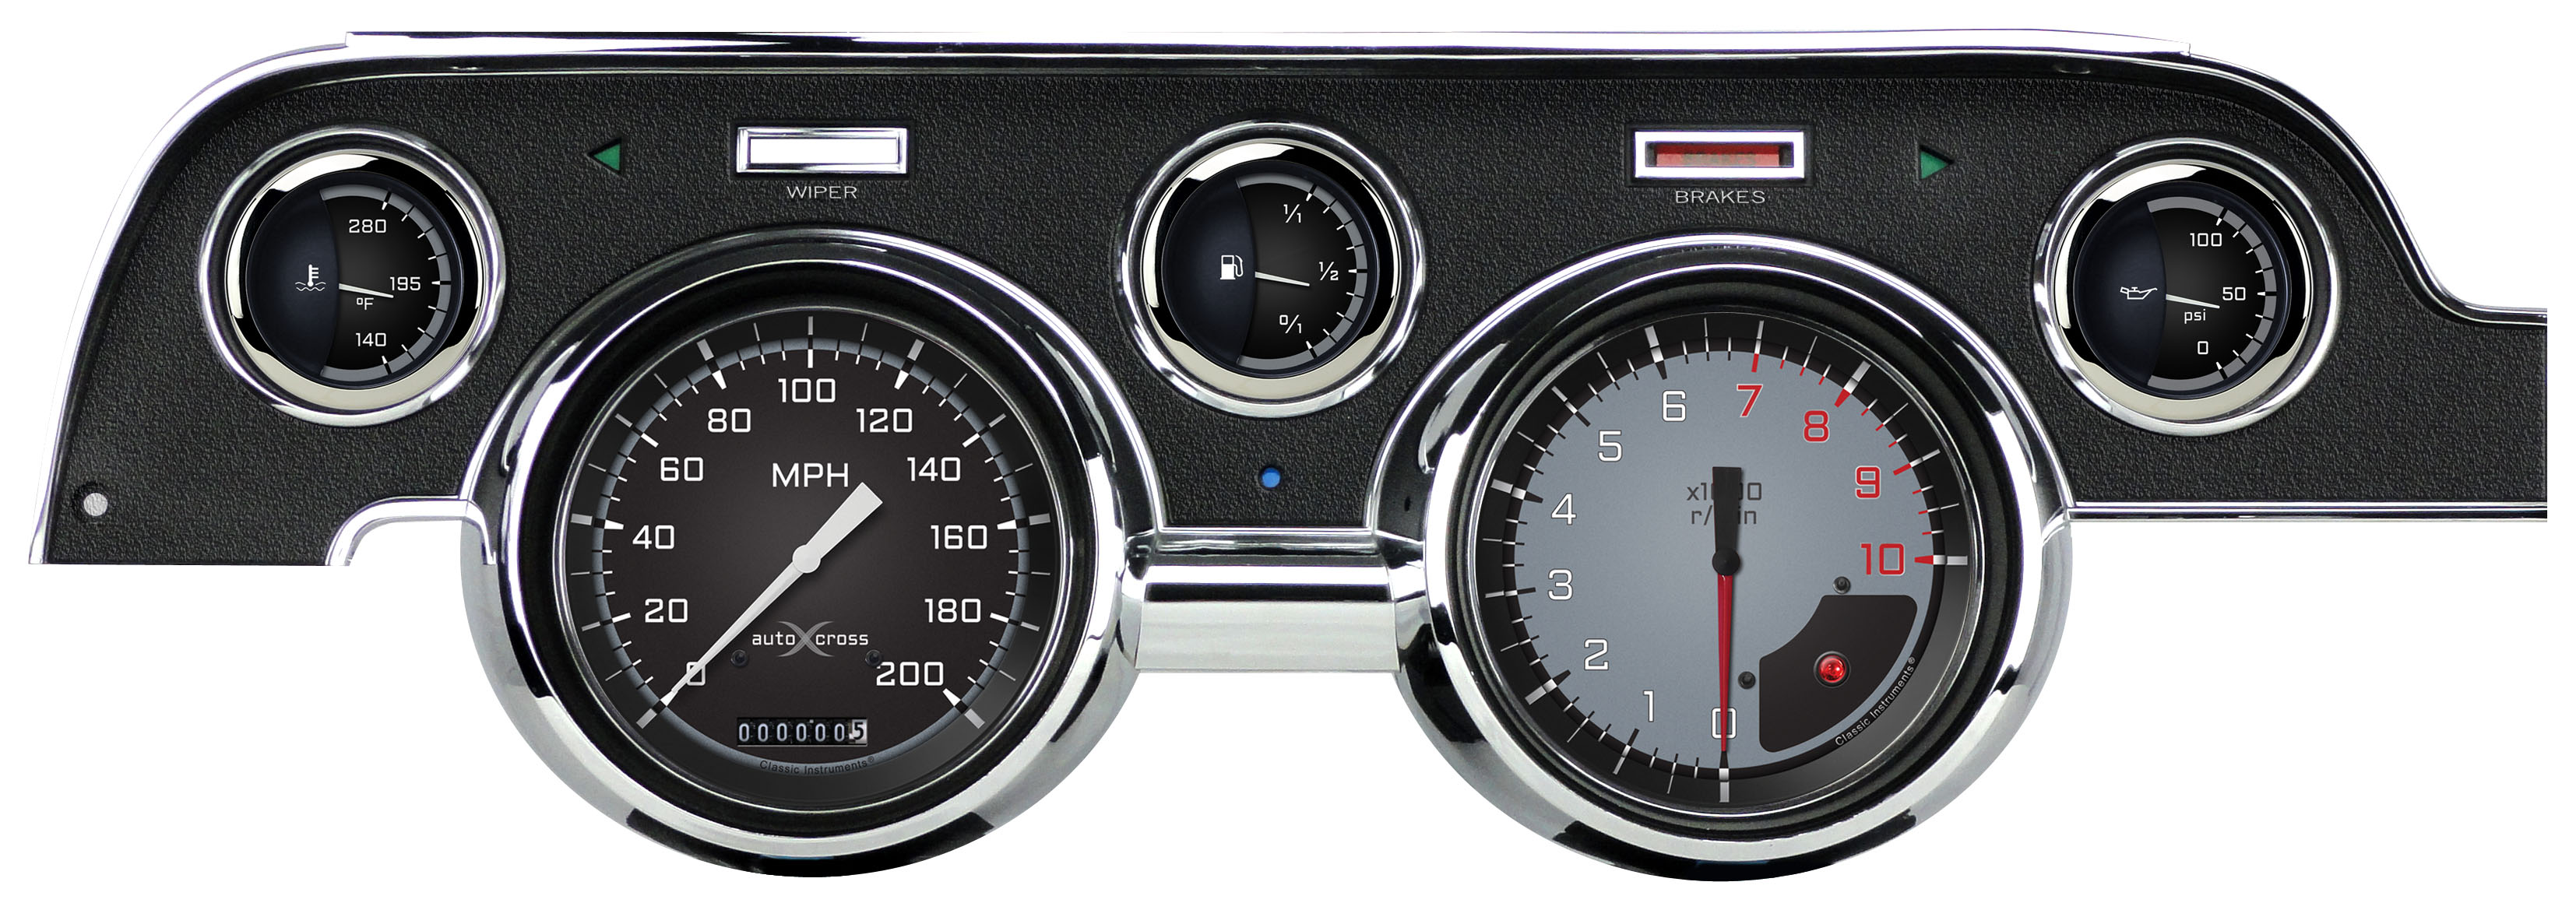 AutoCross Instrument Panels for 1967-68 Ford Mustang